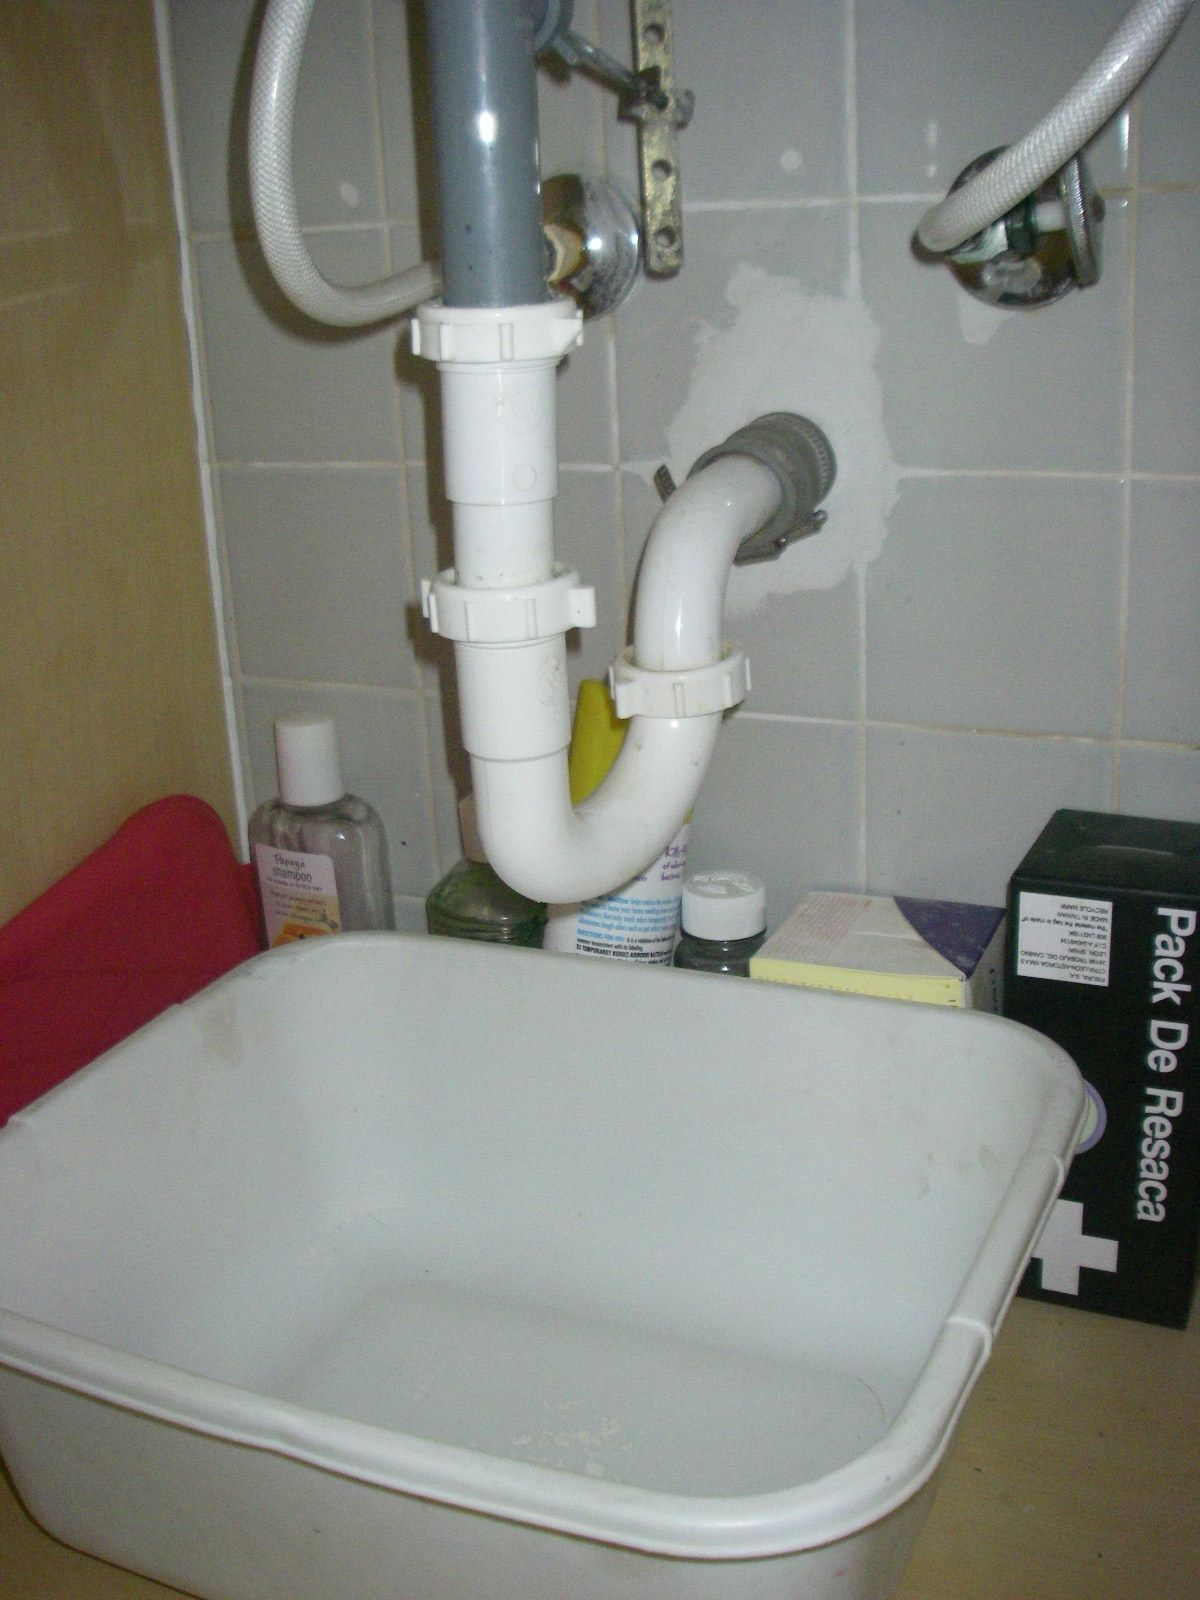 Unclog Bathroom Sink Without Drano Bathroom Exclusiv Pinterest - Drano for bathroom sink